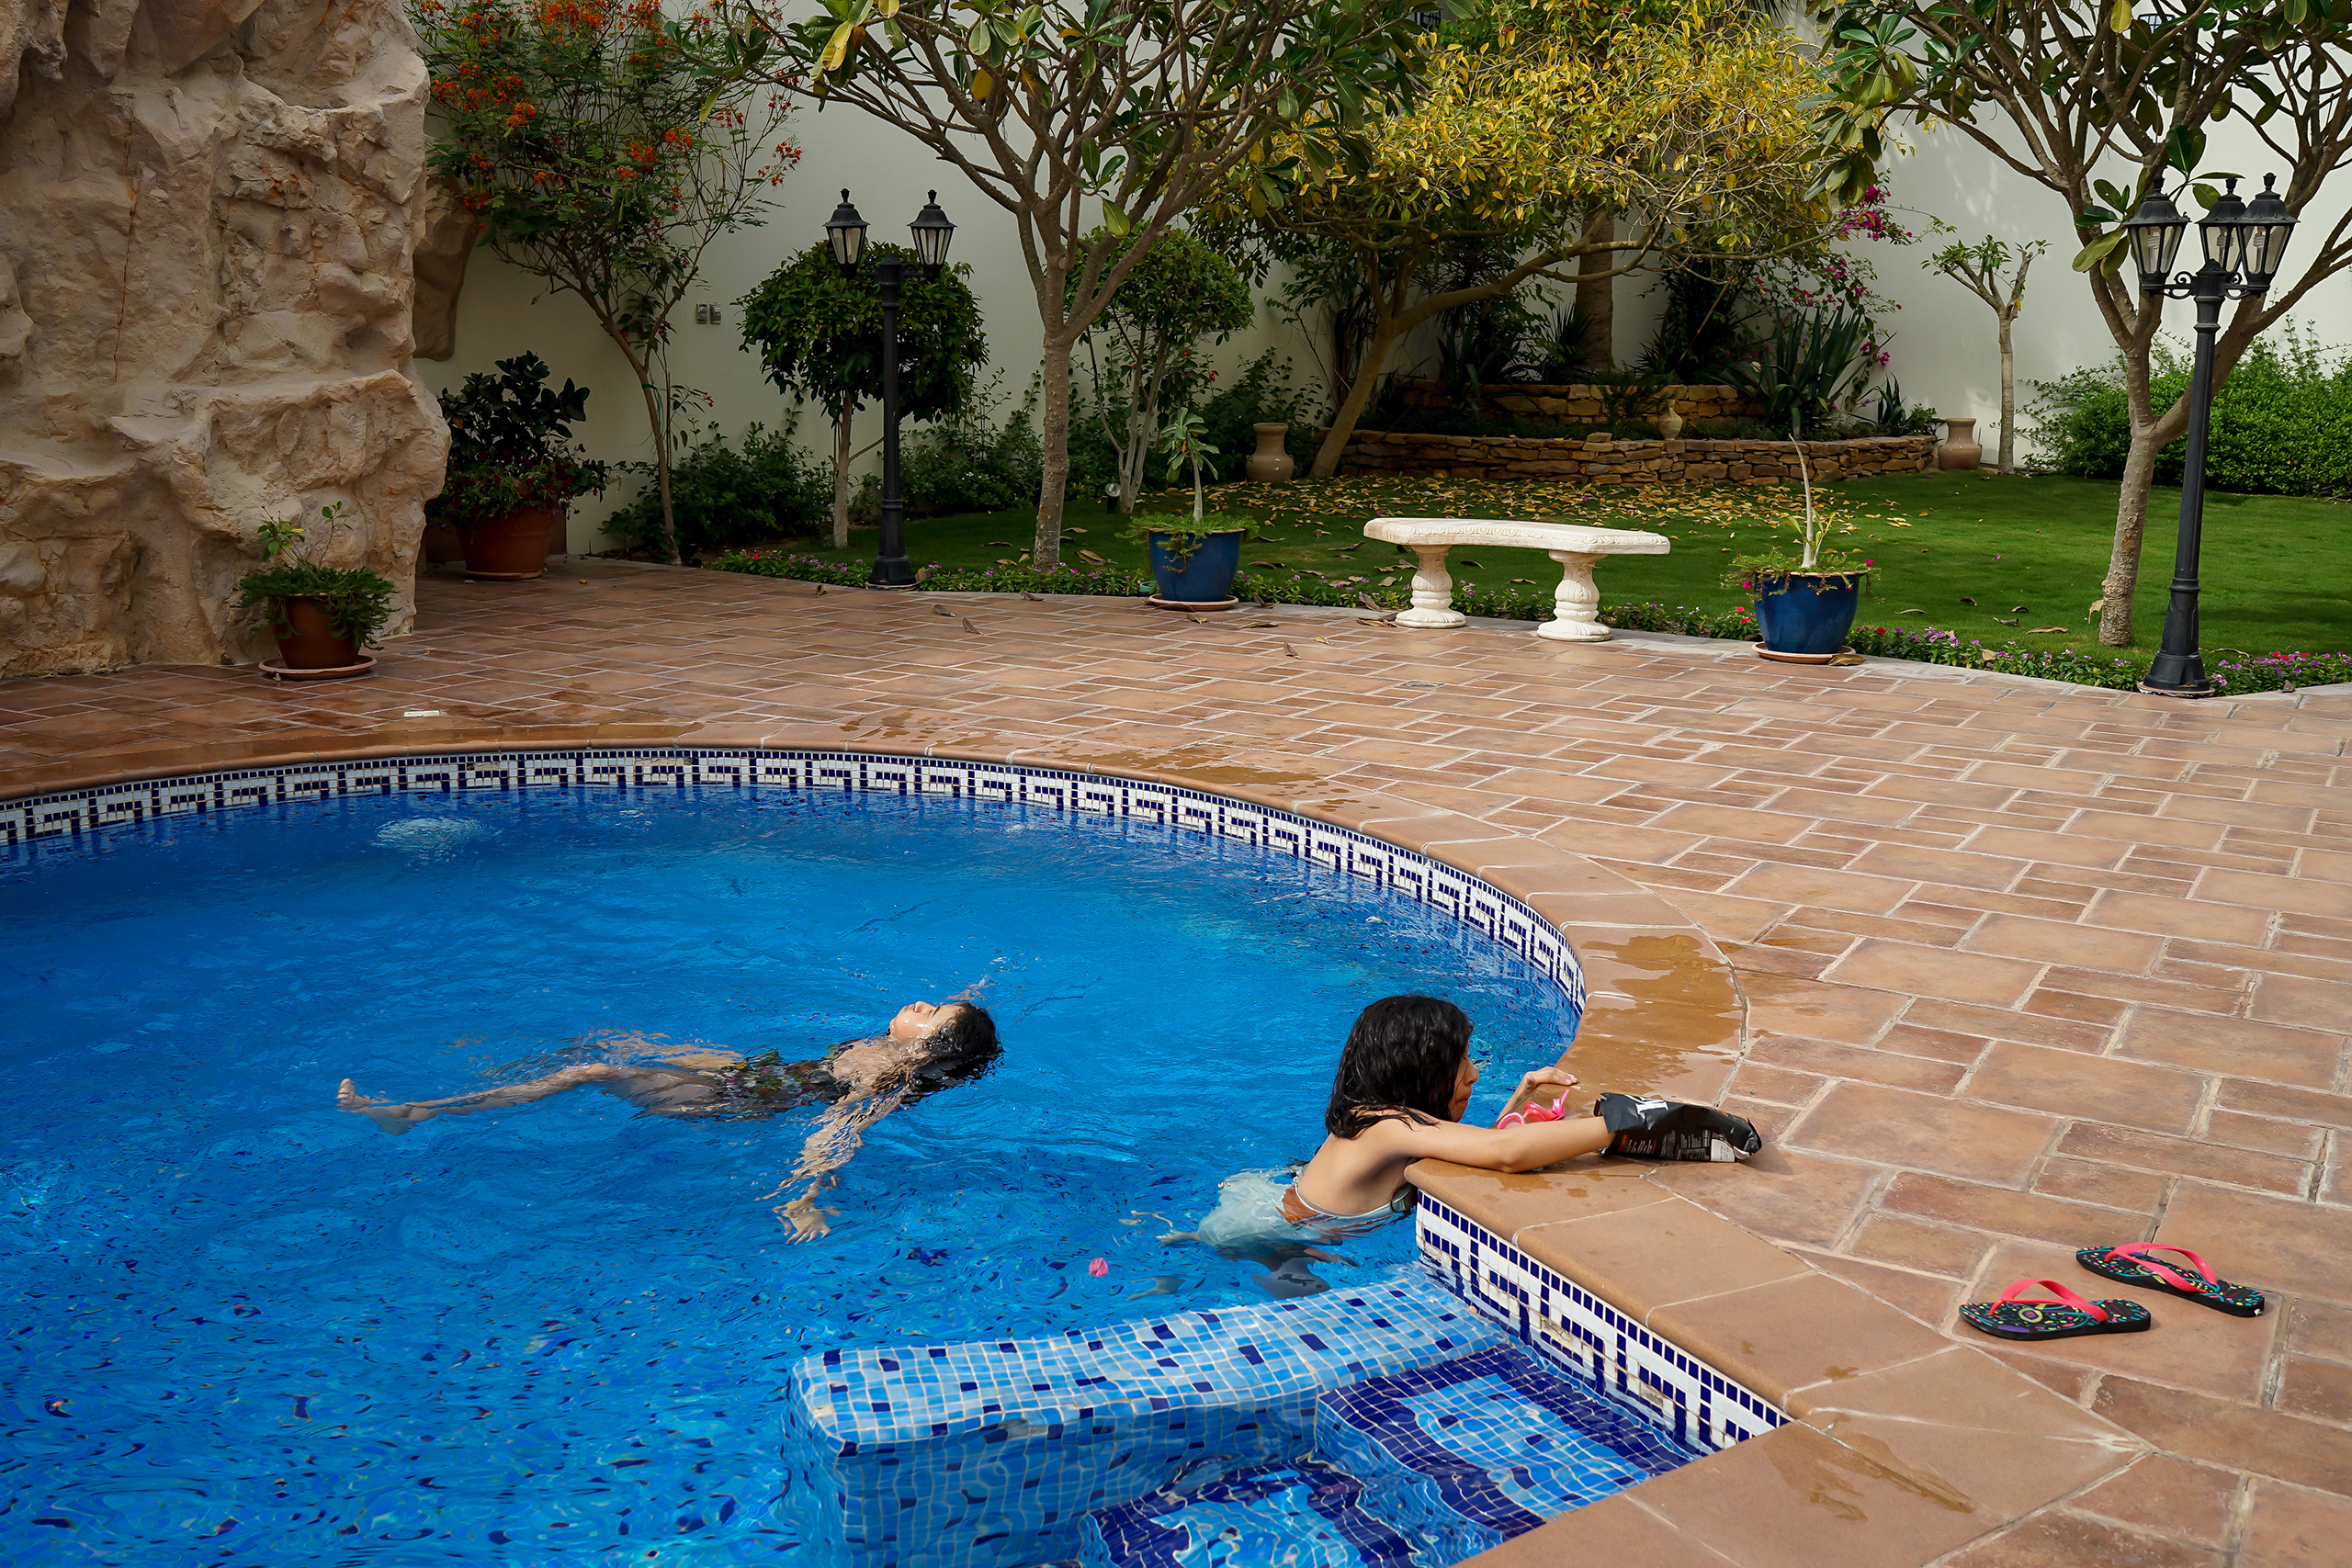 The photographer's daughters, Sura and Yara, swim in a pool at a friend's home in Dhahran, Saudi Arabia, April 2016.  They lay there, free, and careless,  Alsultan says.  There's no public pools for women, neither is there any beach spaces for women only. Only privately owned or very expensive clubs that is not available to Saudis.